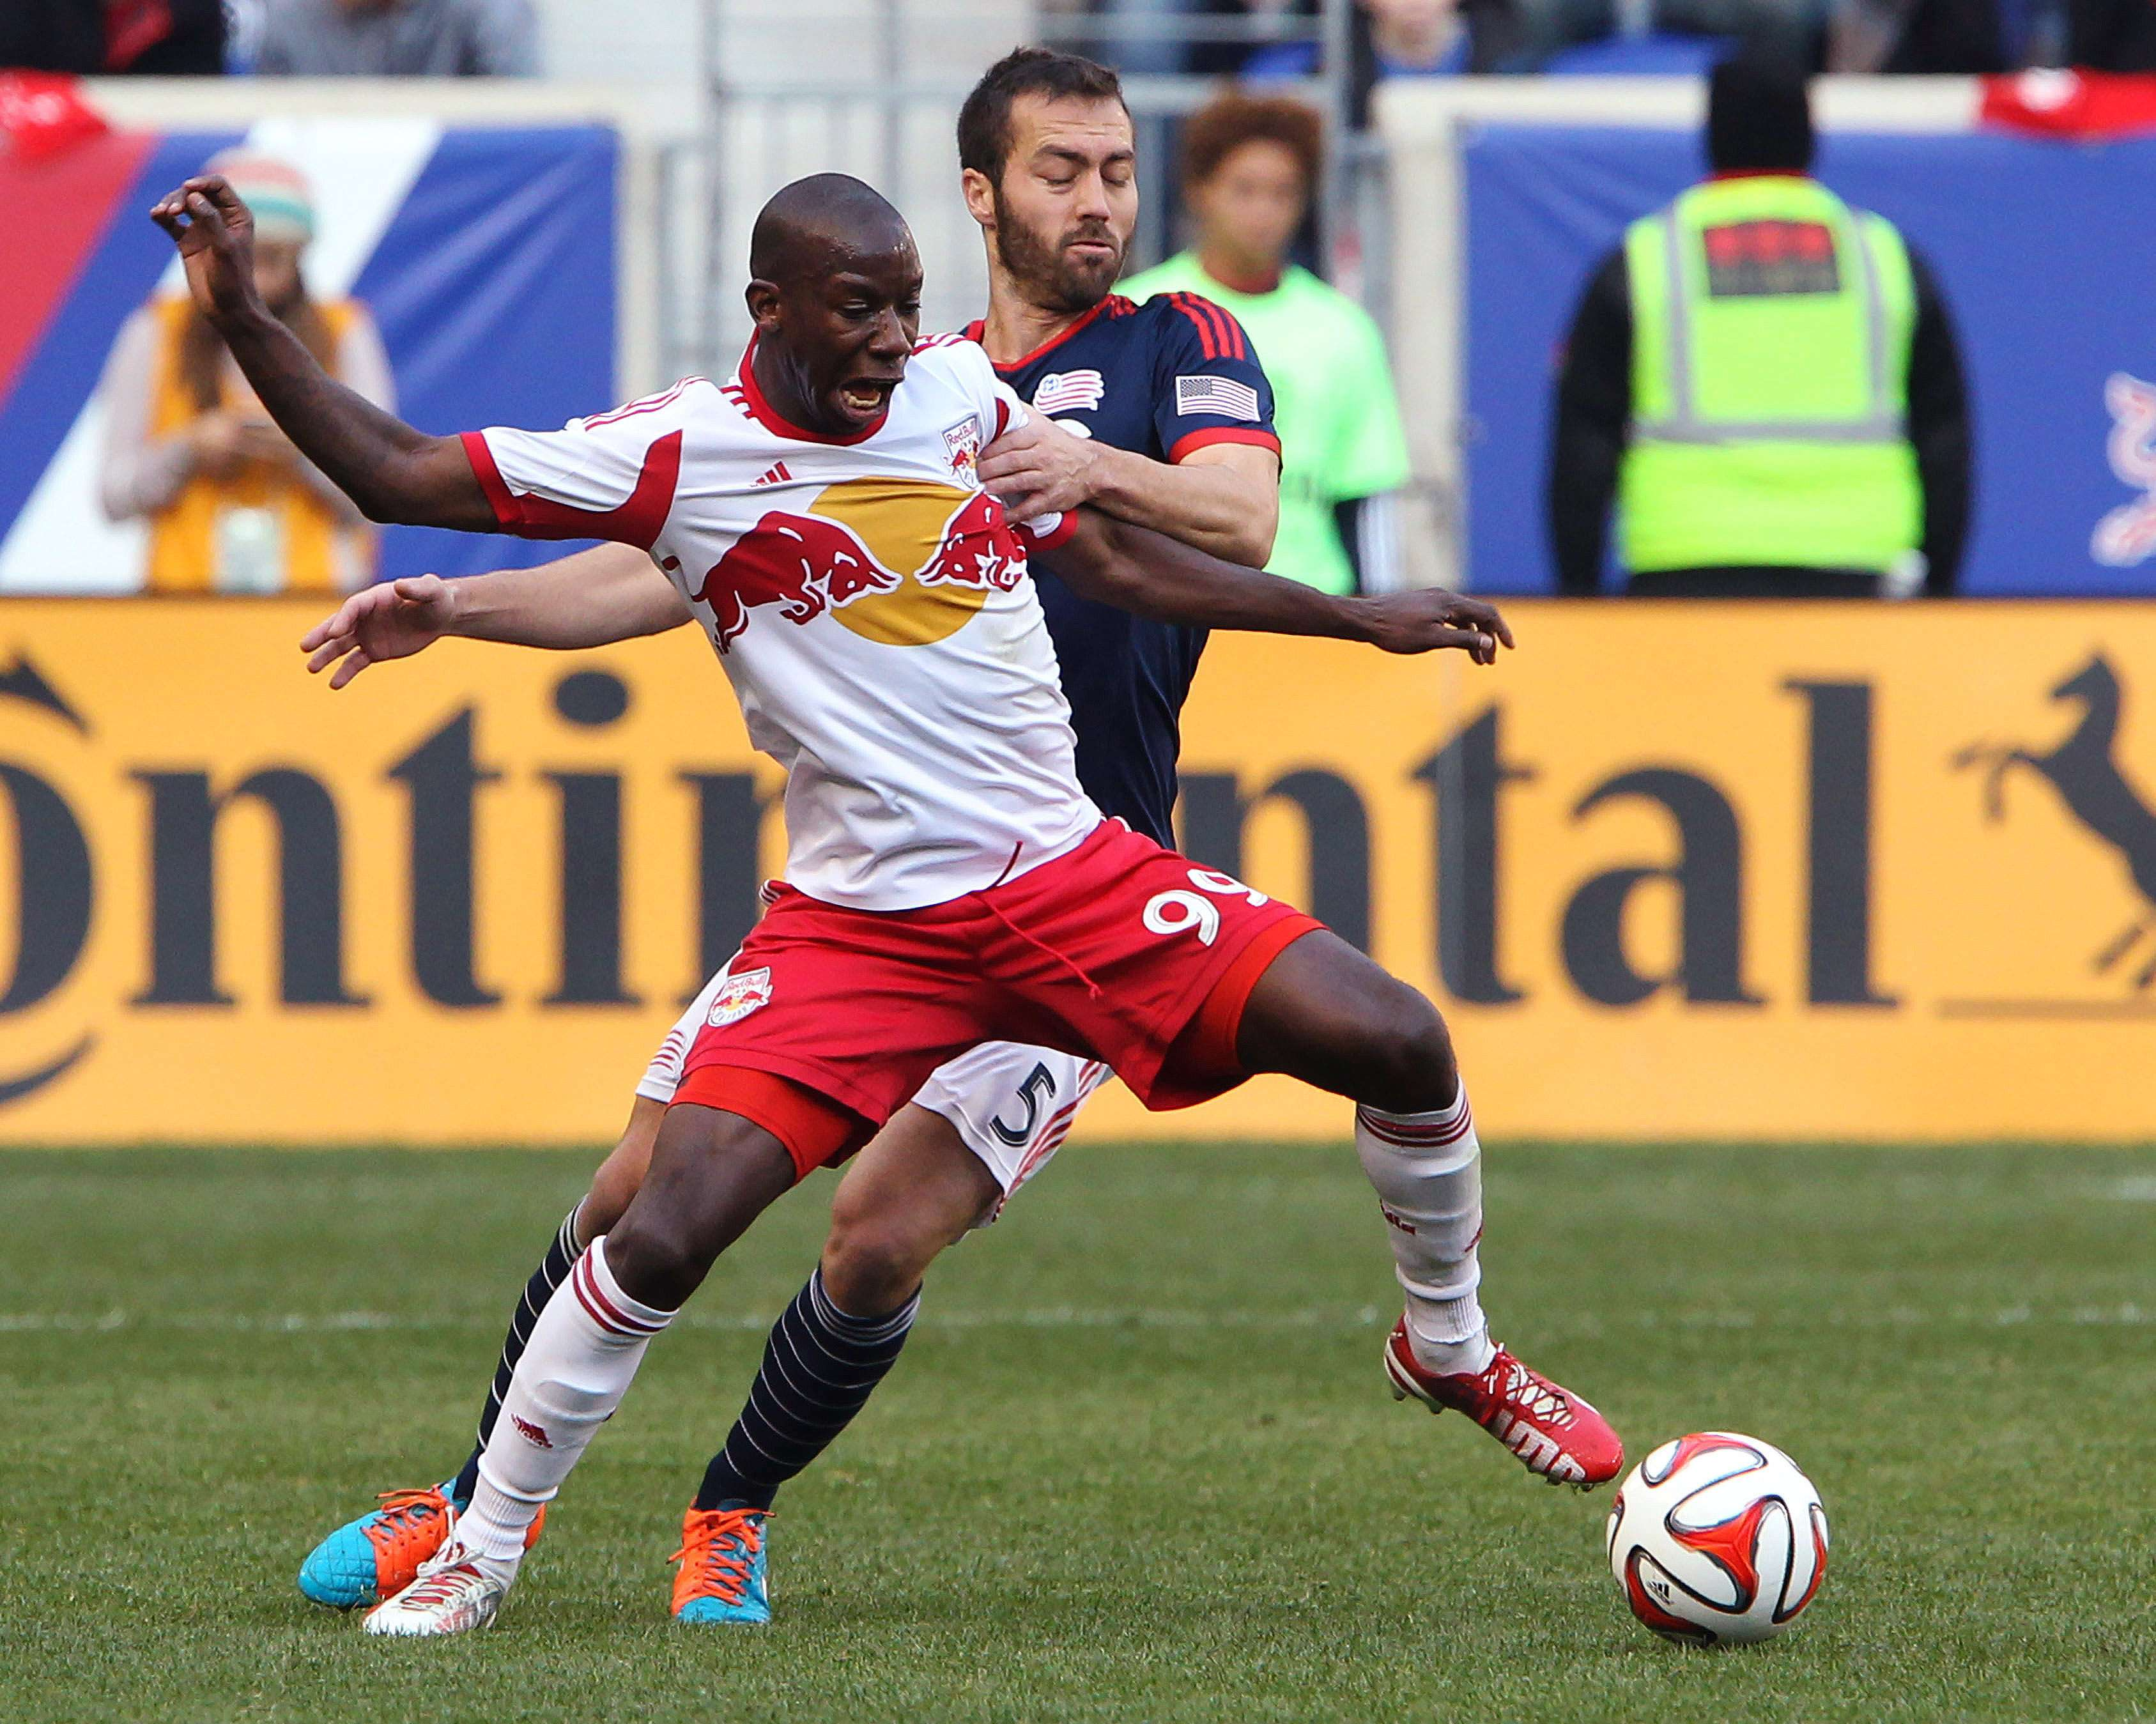 Nov 23, 2014; Harrison, NJ, USA; New England Revolution defender A.J. Soares (5) defends against New York Red Bulls forward Bradley Wright-Phillips (99) during the first half of the Eastern Conference Championship at Red Bull Arena. Mandatory Credit: Noah K. Murray-USA TODAY Sports Foto: Noah K. Murray/USA Today Sports